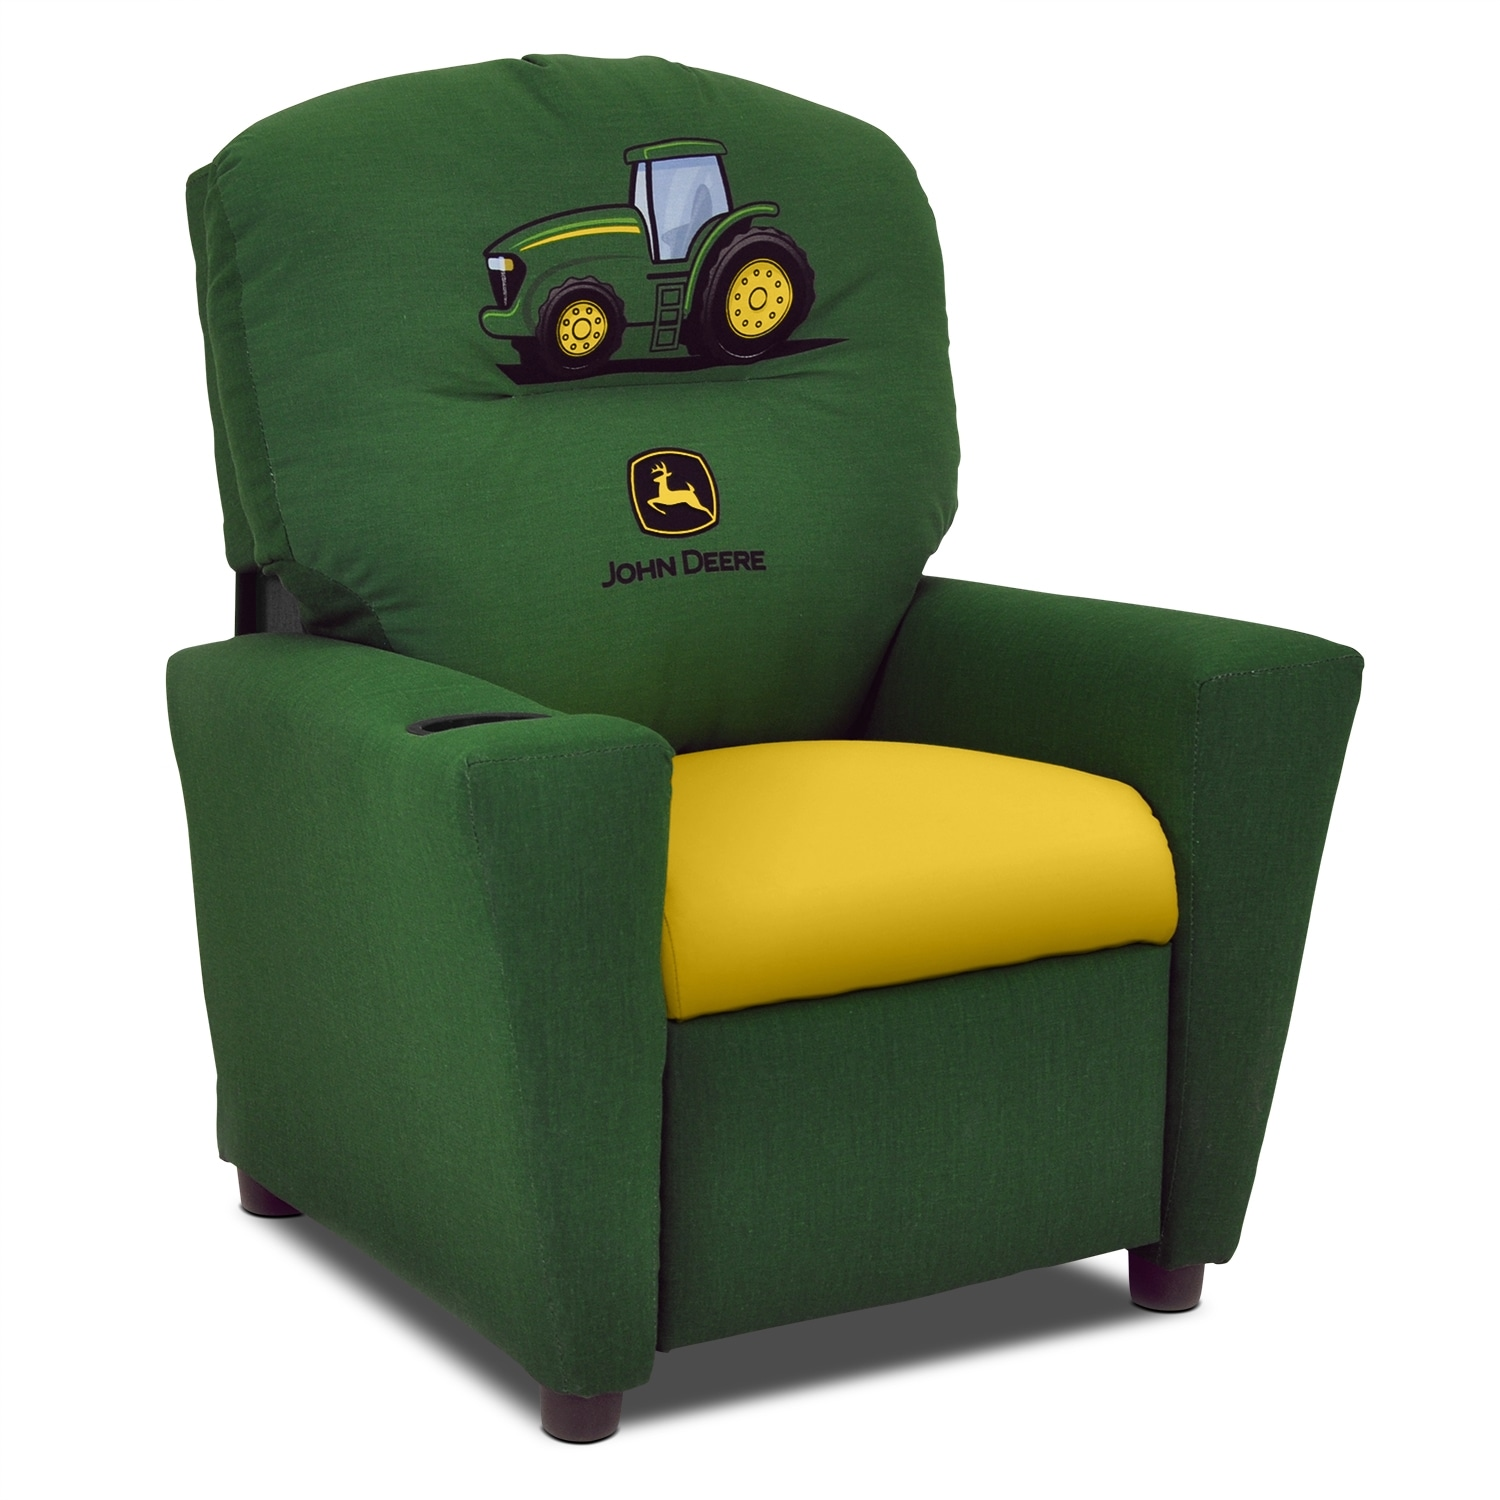 Recliner chair green - Hover To Zoom